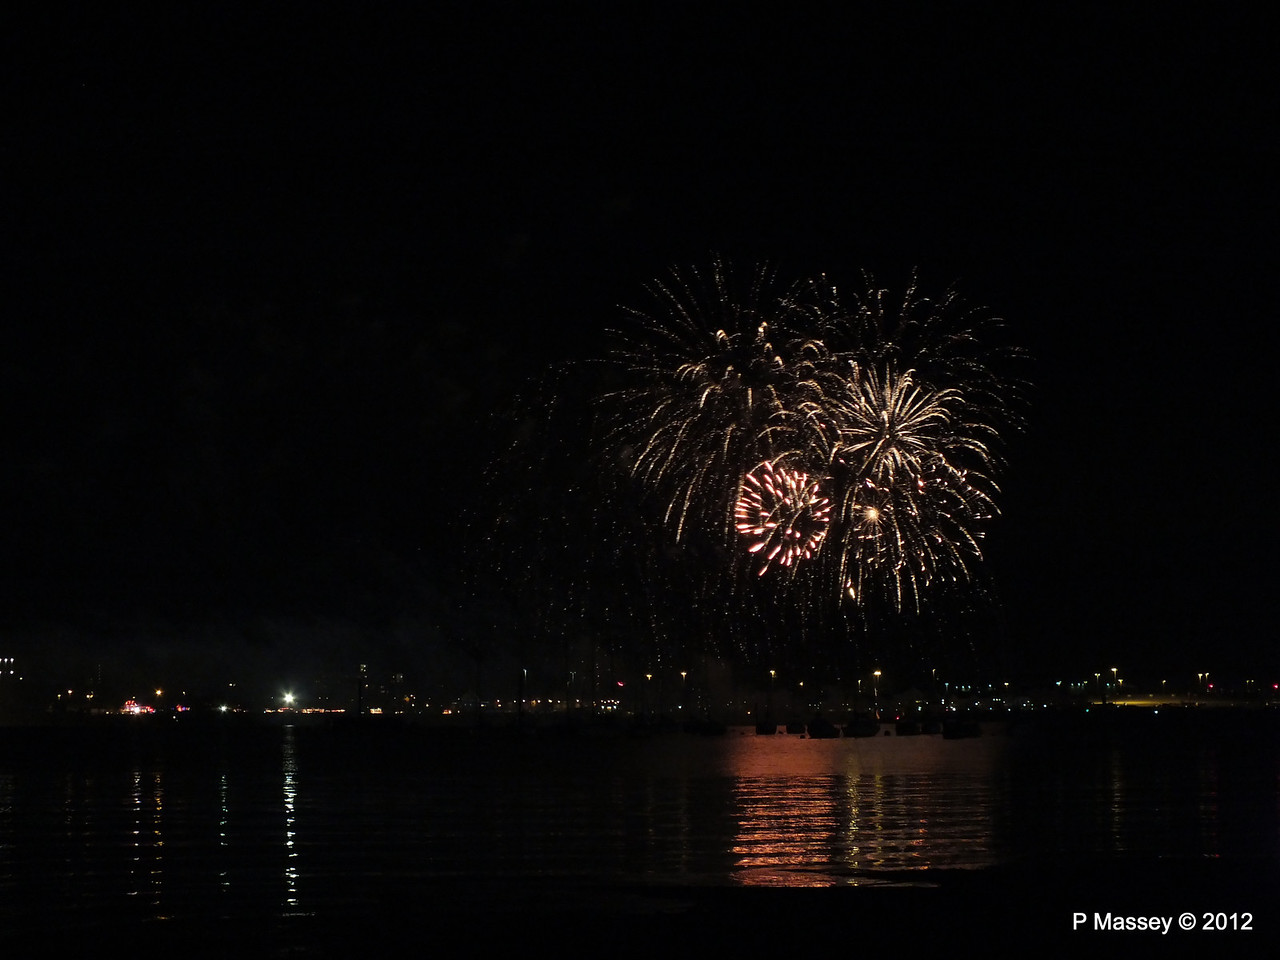 Fireworks off Mayflower Park PDM 03-11-2012 20-55-45